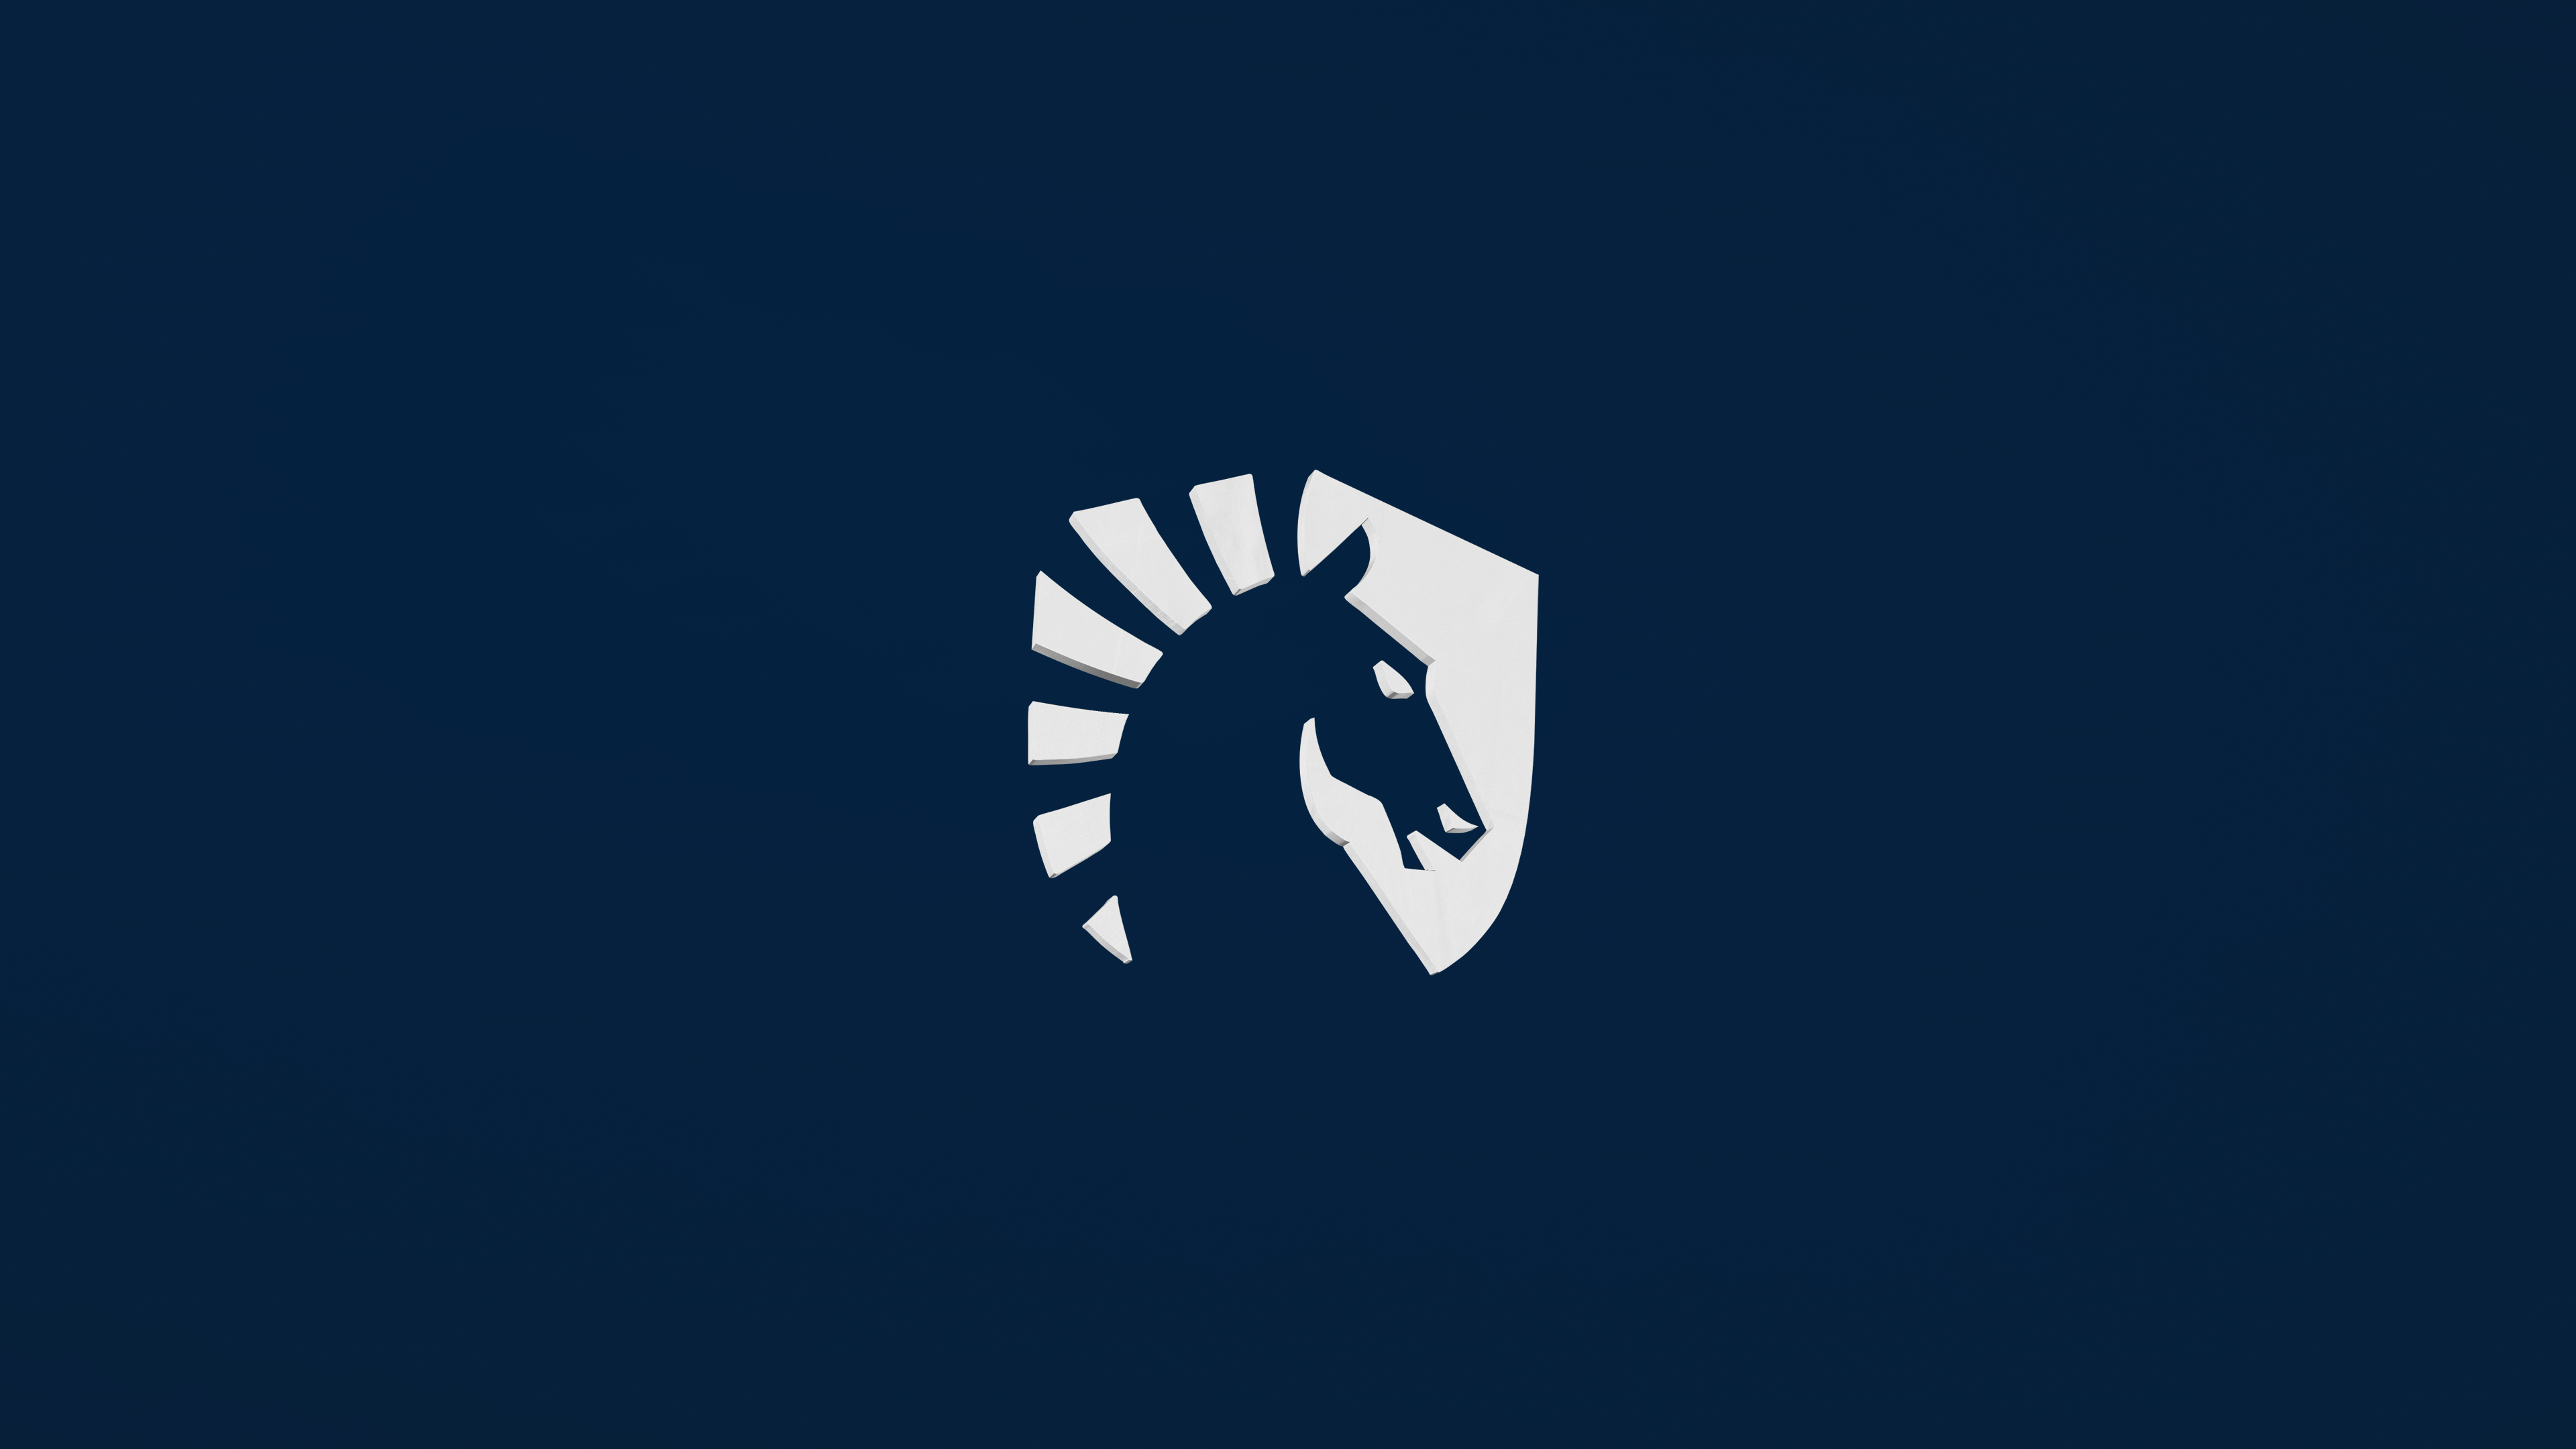 Team Liquid HD Logo 4k Wallpapers Images Backgrounds Photos And